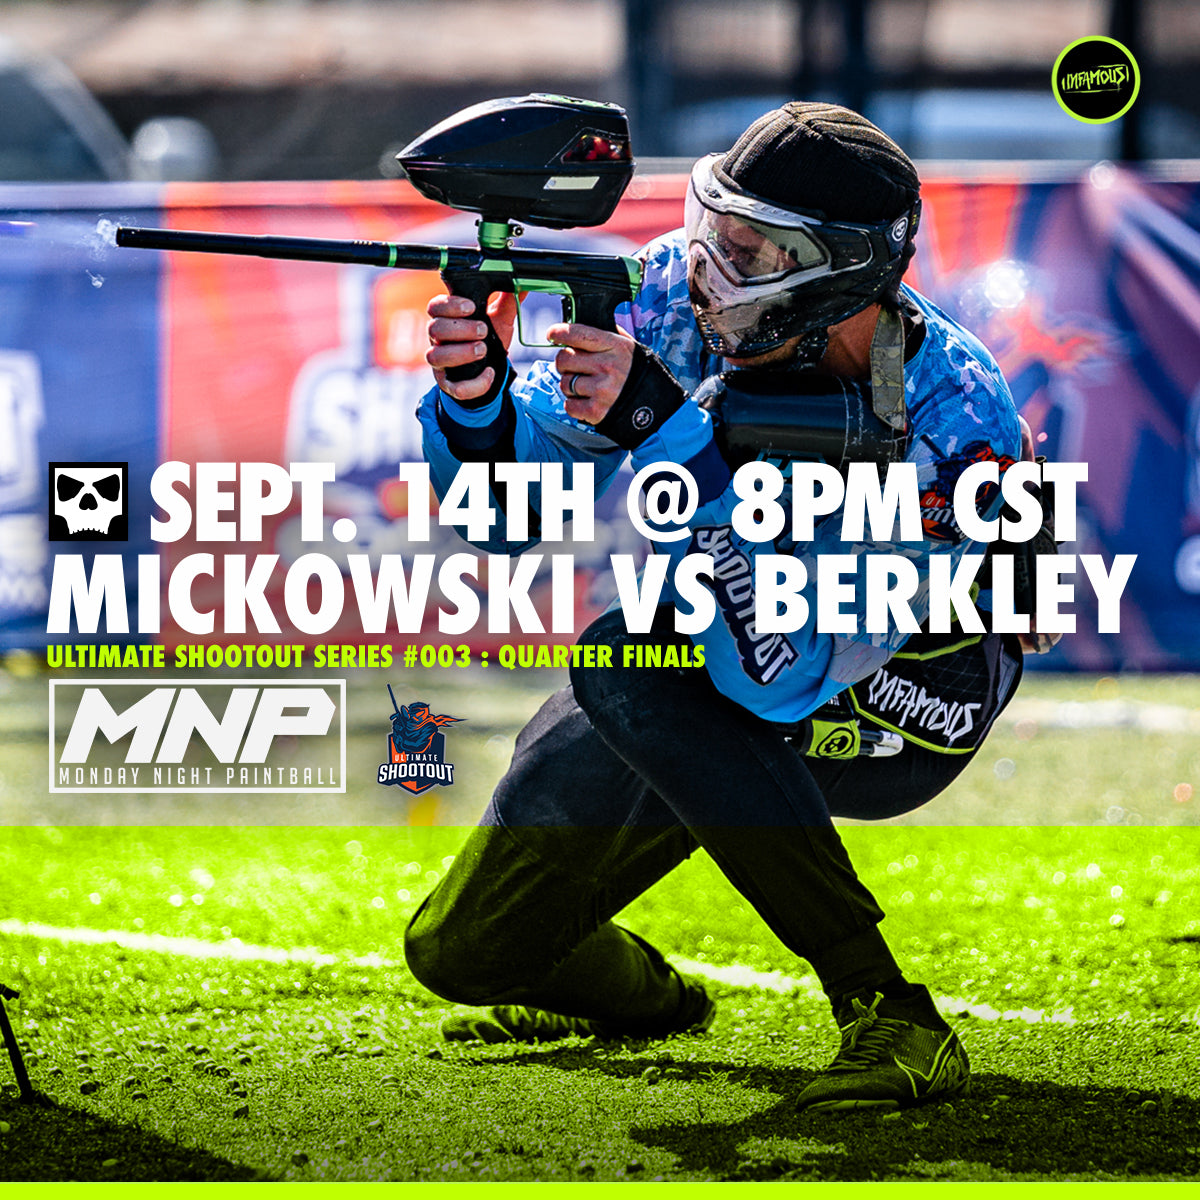 Cody Mickowski vs Berkley on Monday Night Paintball